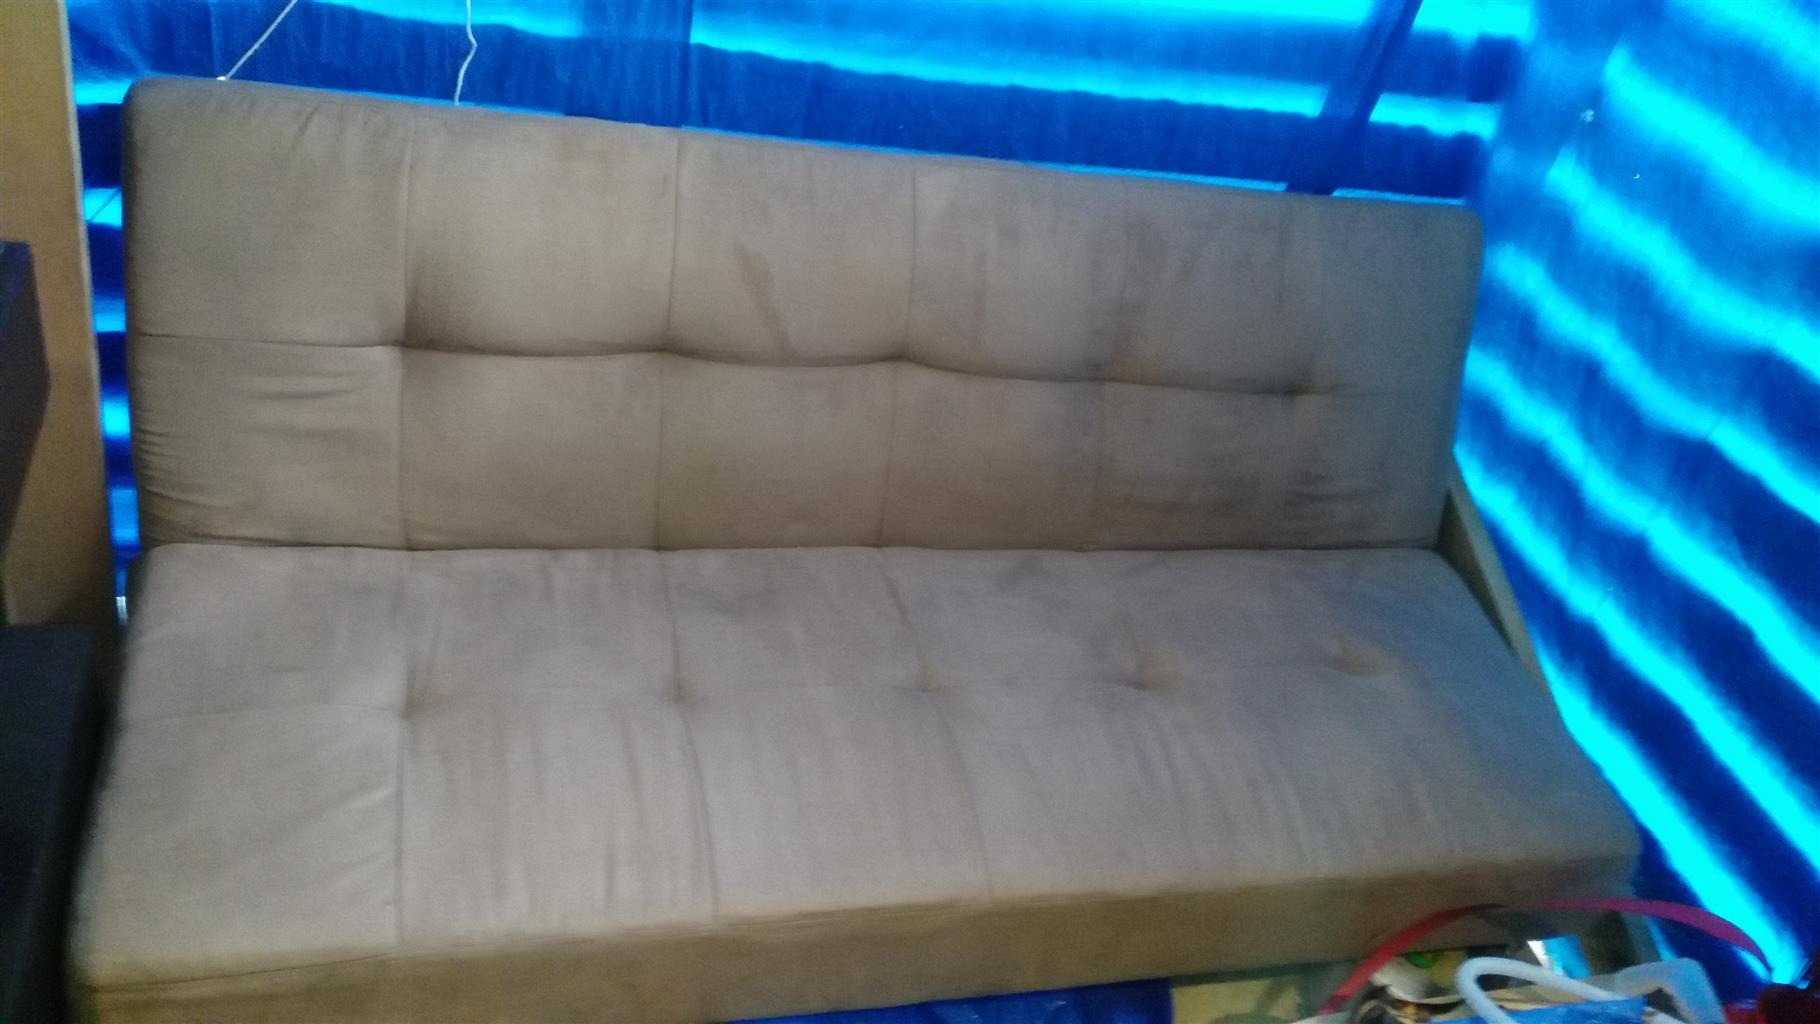 Sleeper couch and French doors